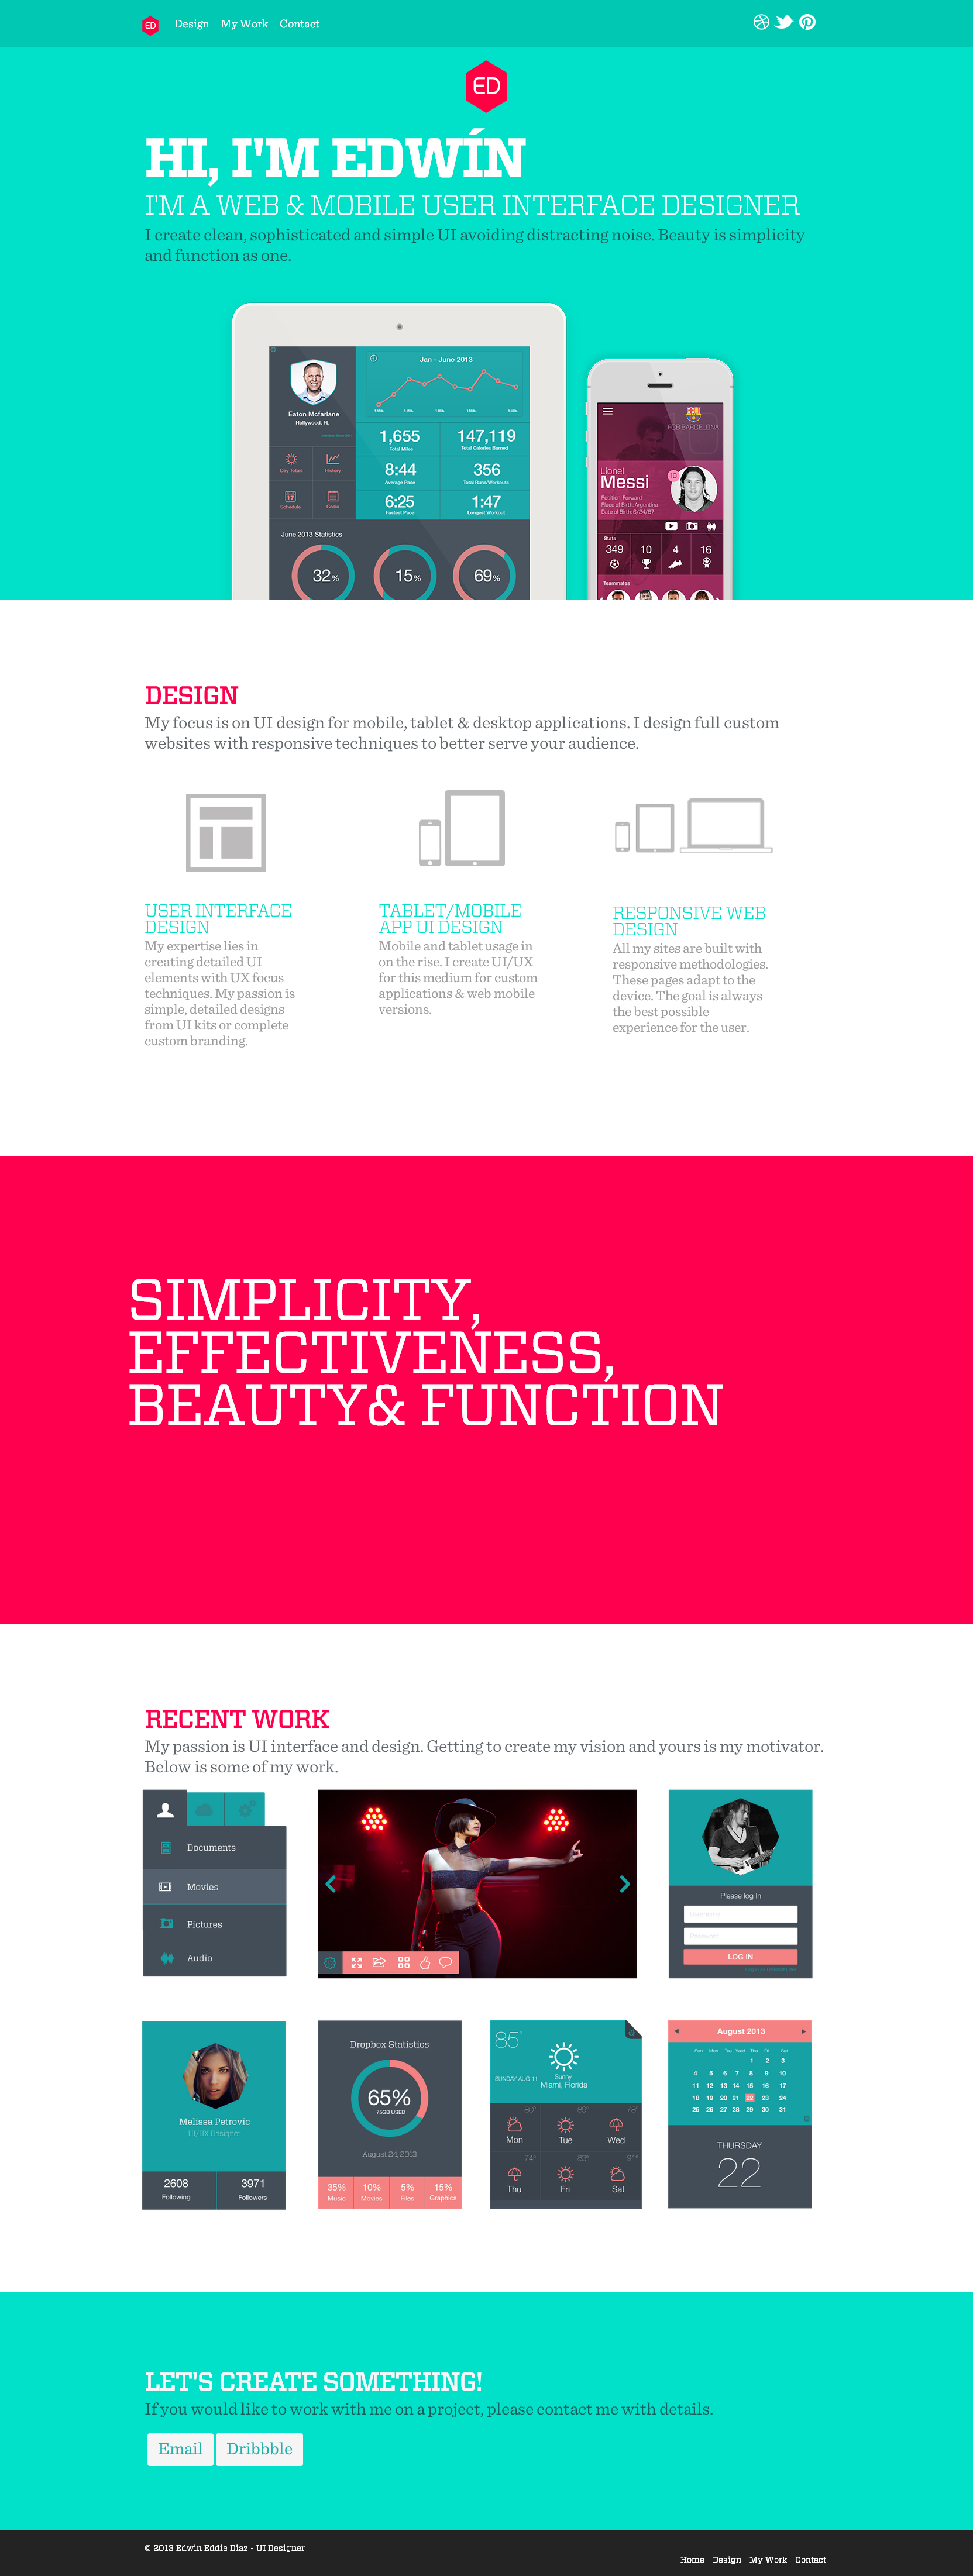 Edwin Eddie Diaz - Clean Website for Your Inspiration